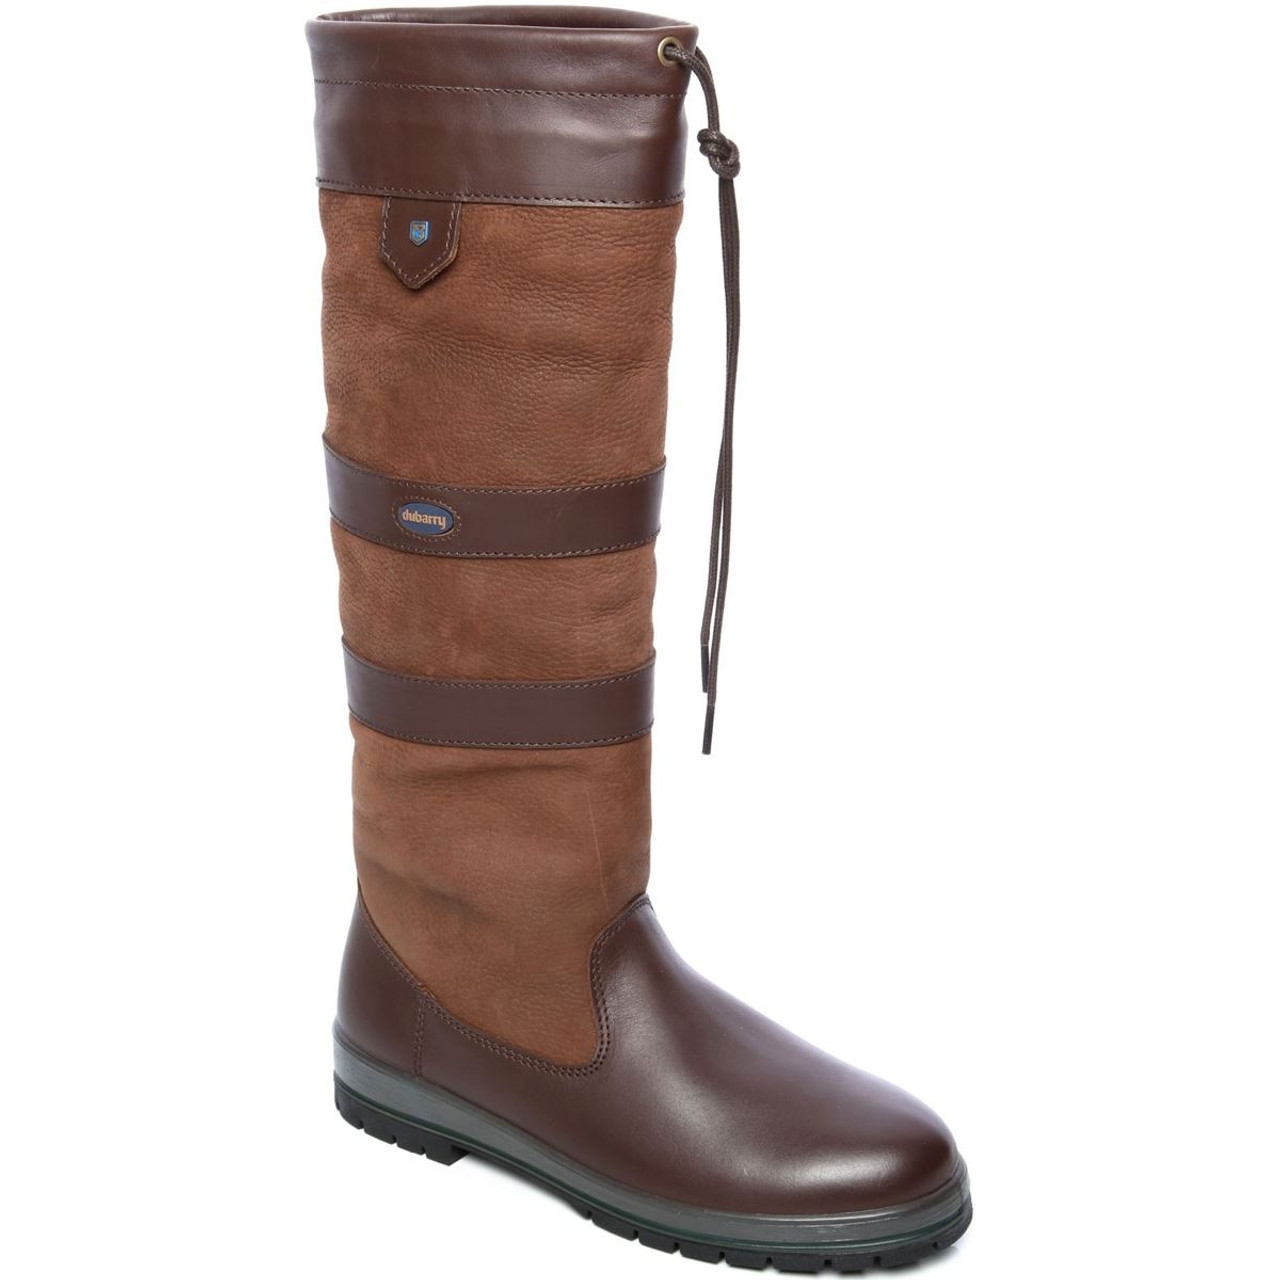 Dubarry Galway SlimFit Boots